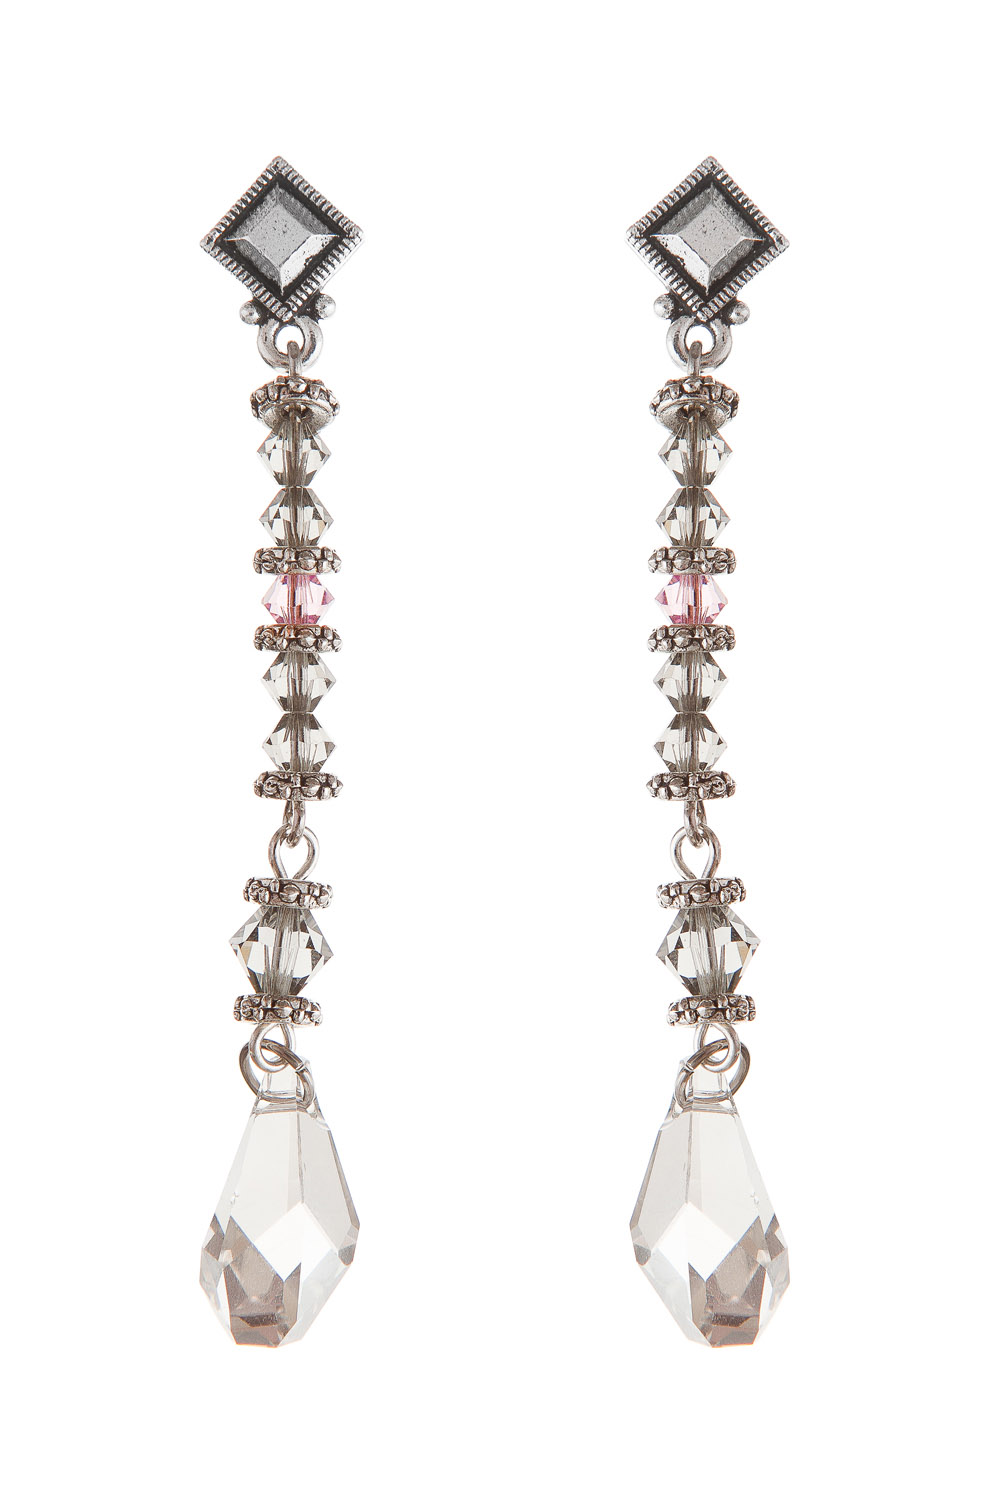 Swarovski-Drops-Grey-Light-Amethyst-earrings-SenseOfColor